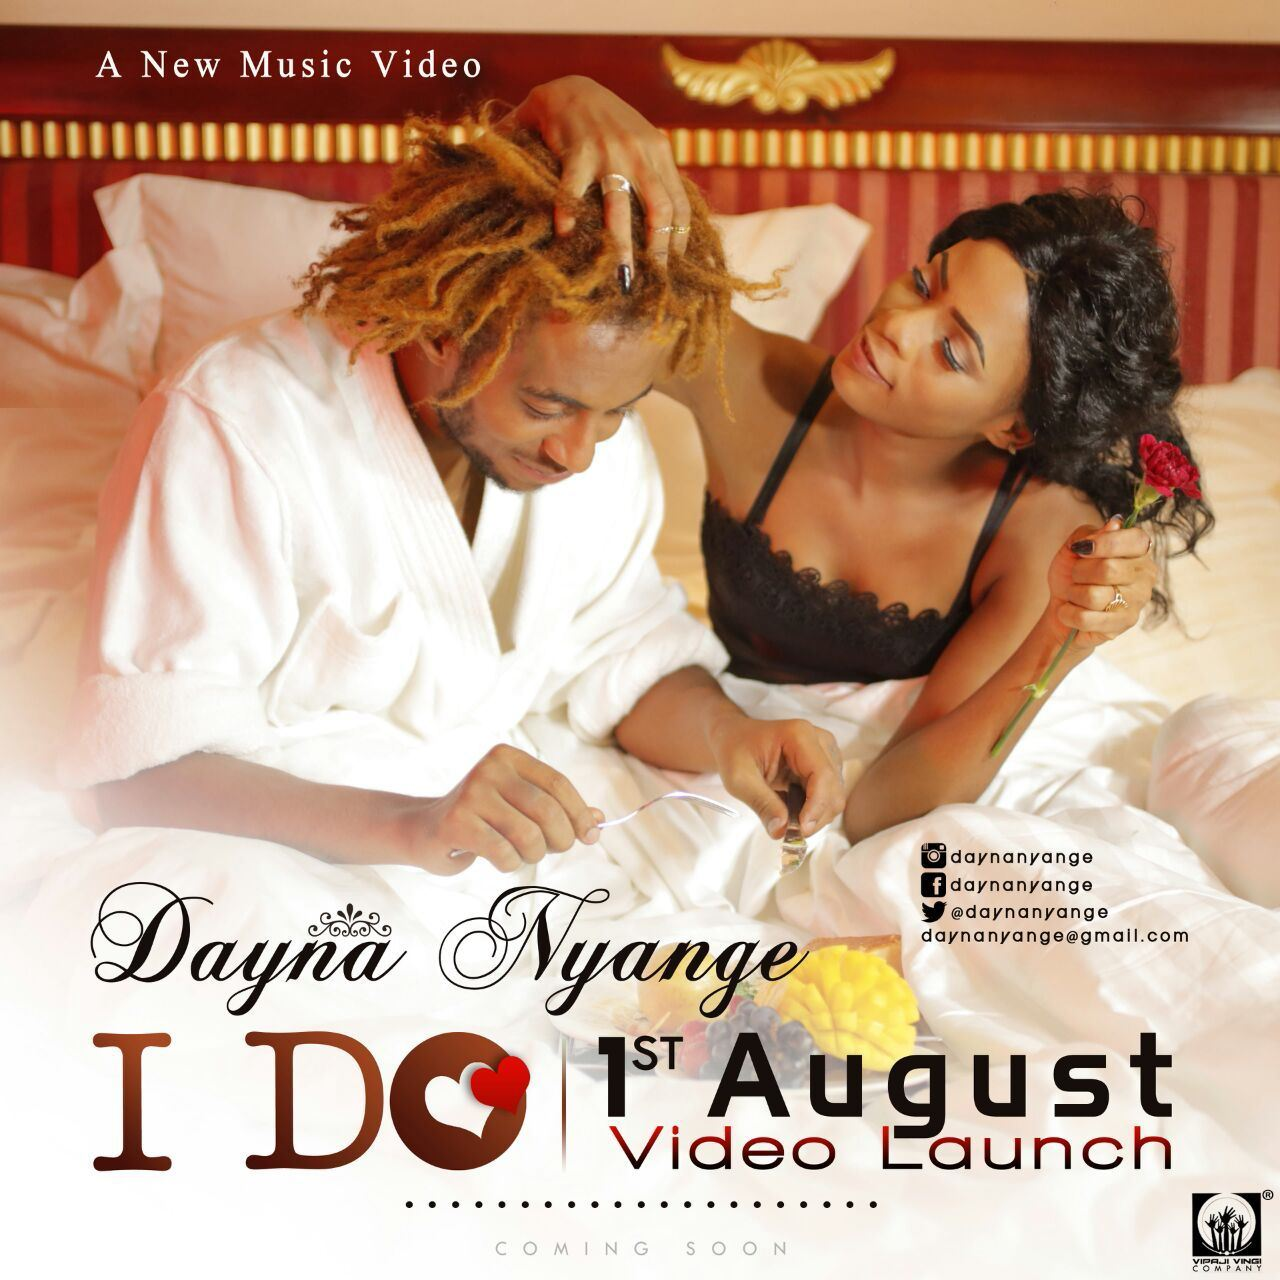 Dayna Nyange, I Do video featuring Nando from Big Brother Africa